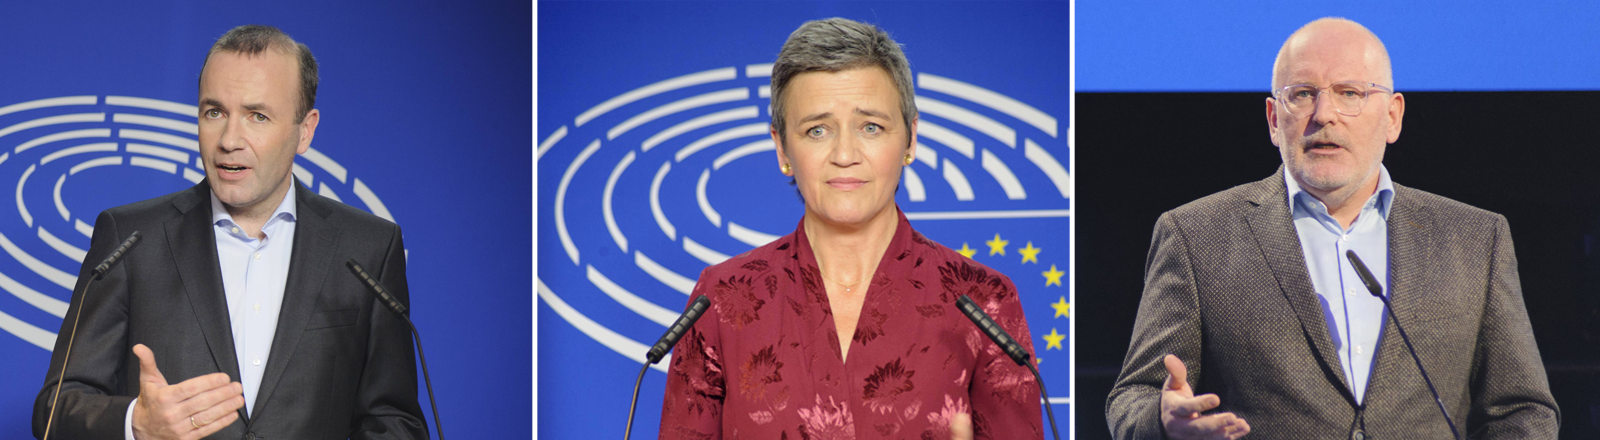 Von links: Manfred Weber, Margrethe Vestager, Frans Timmermans